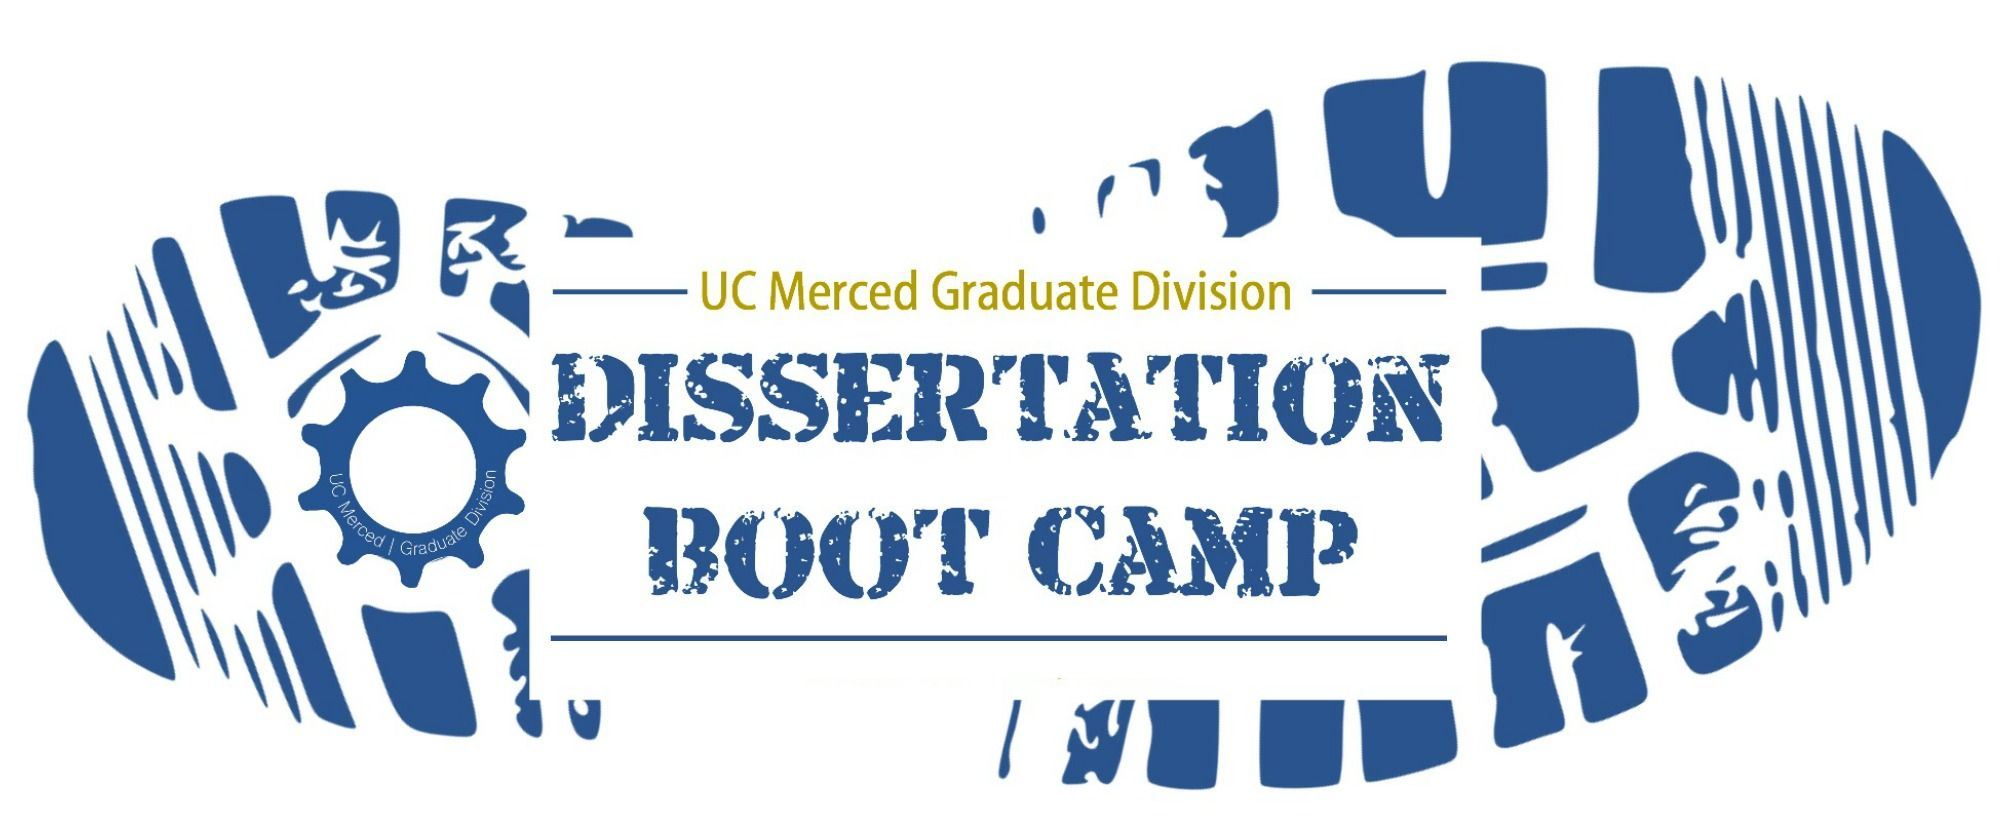 northwestern dissertation boot camp Spring 2018 boot camp will be held march 2-3 sam houston state university dissertation boot camp and writing support services the office of graduate studies at sam houston state university is fully committed to supporting those students at or approaching the proposal, thesis, or dissertation portion of their education.